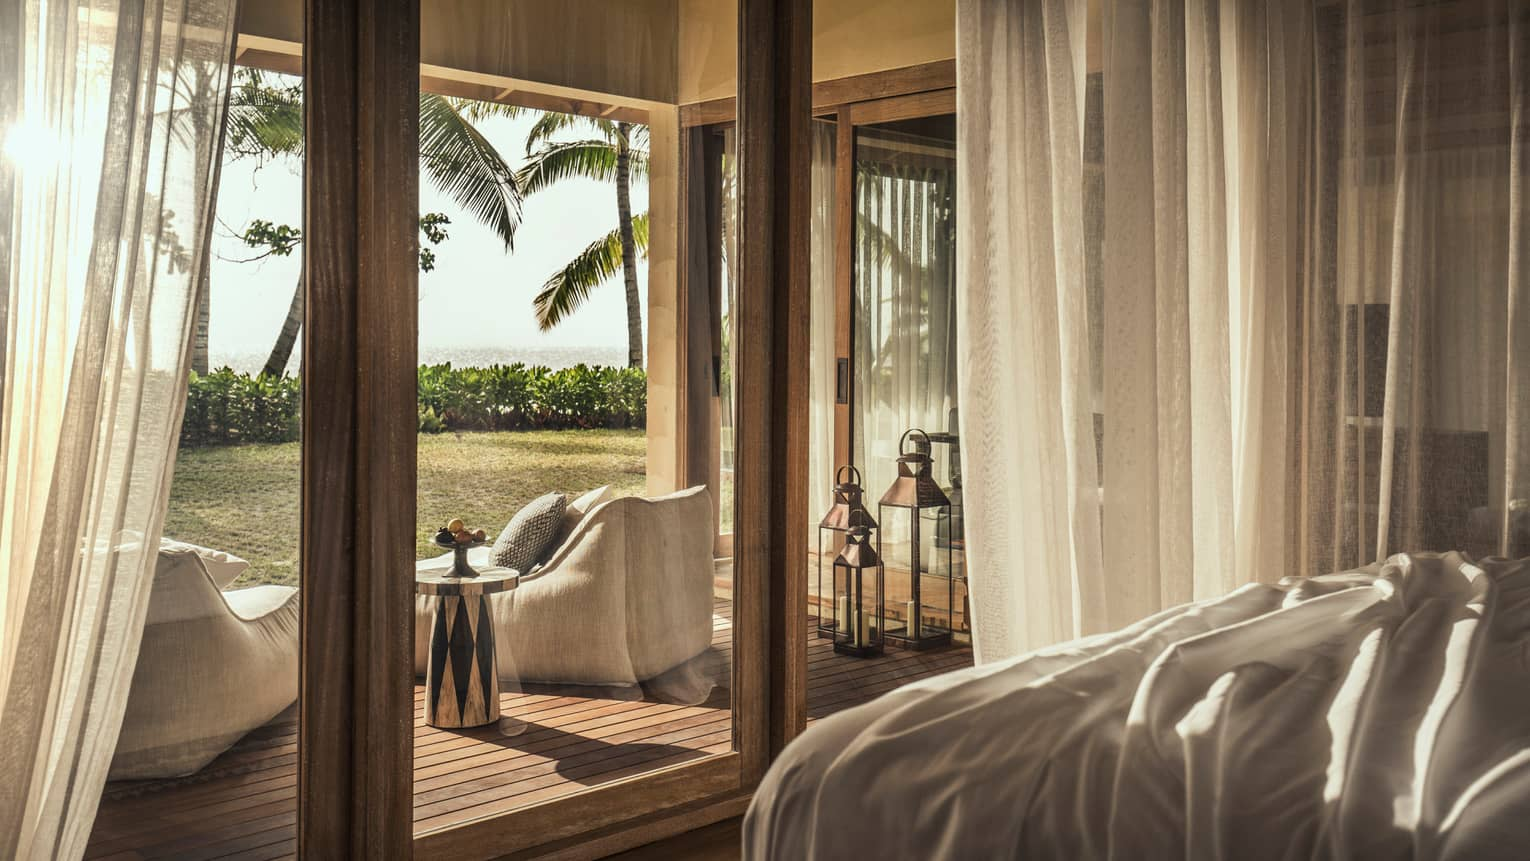 Desroches Suite bedroom floor-to-ceiling glass patio doors, cushioned chairs on deck